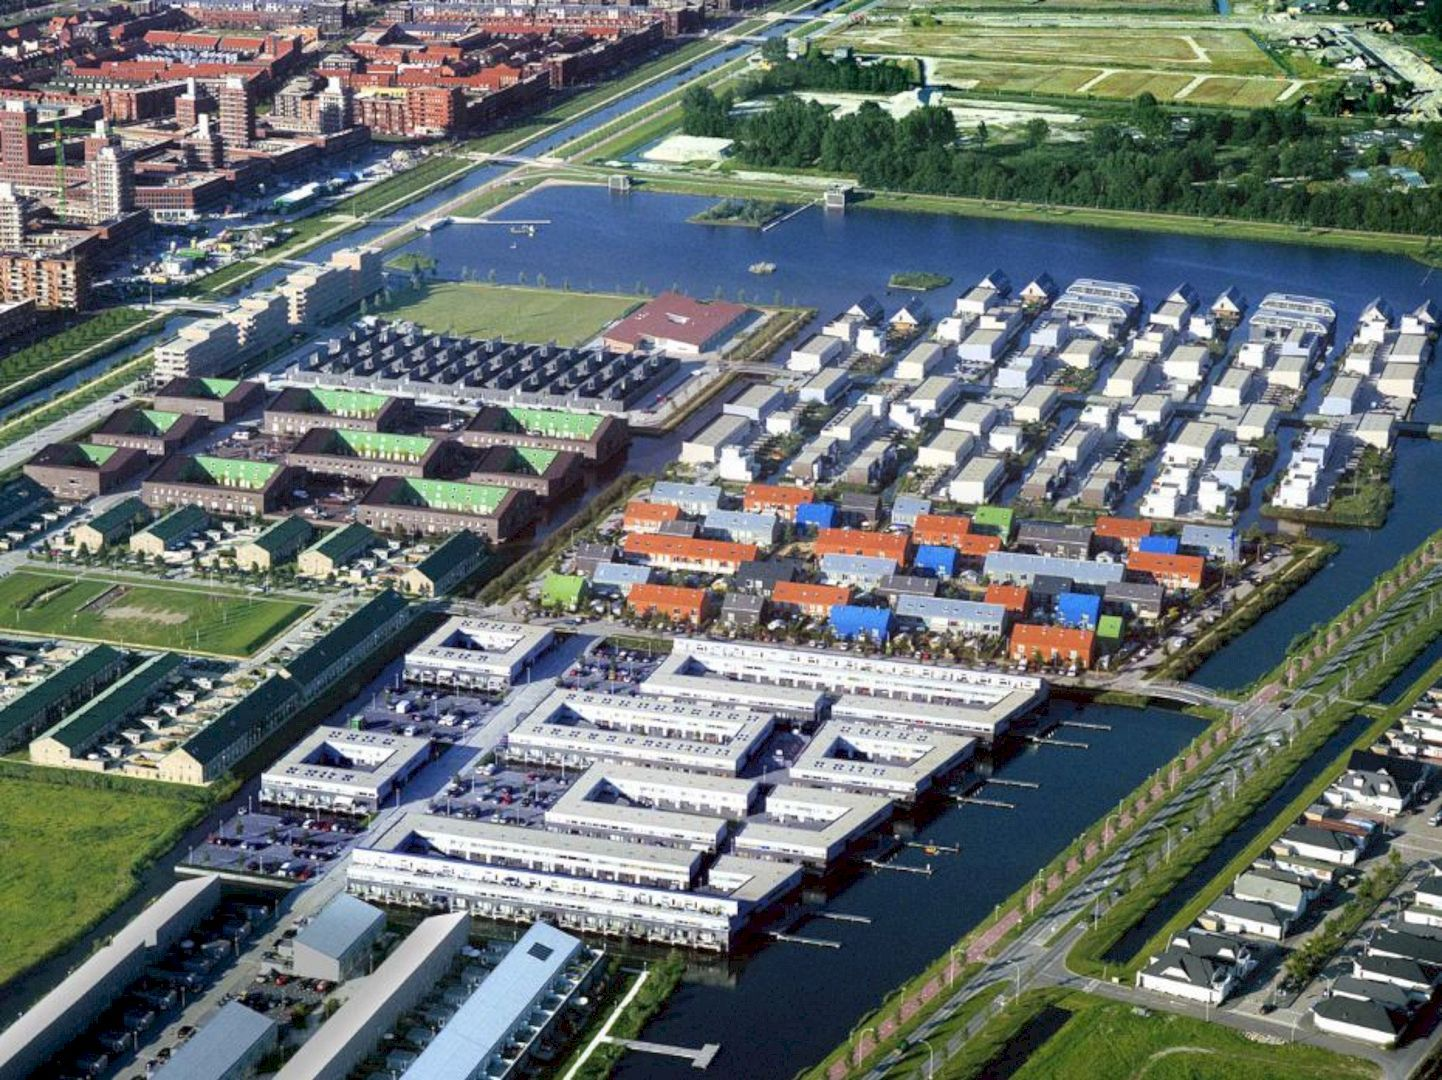 Ypenburg A New Housing Development With A Different